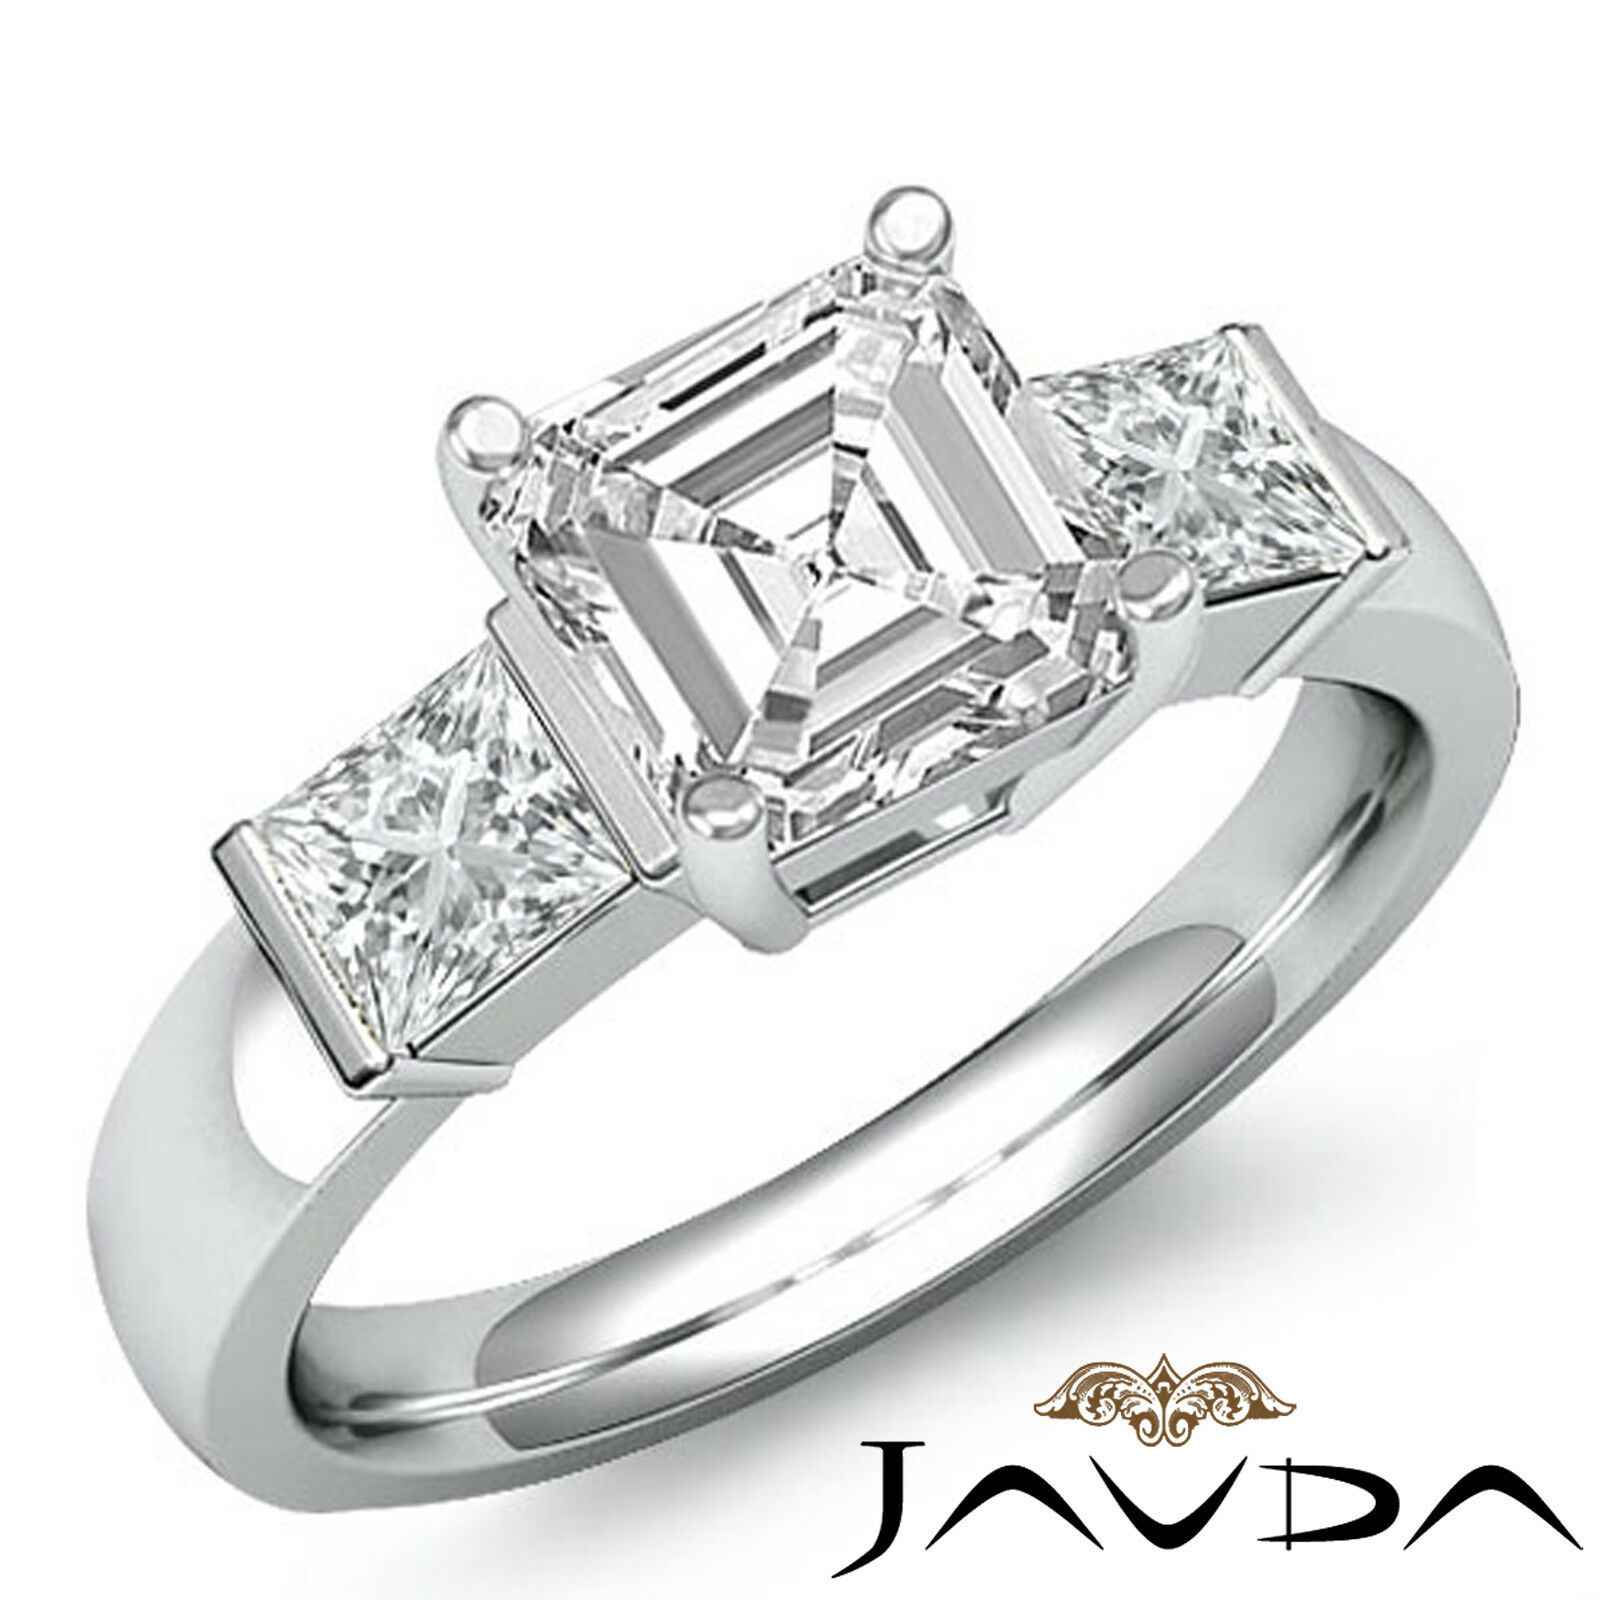 engagement rush anye asscher rings cut white diamond ct ring gold vintage asher inspired on